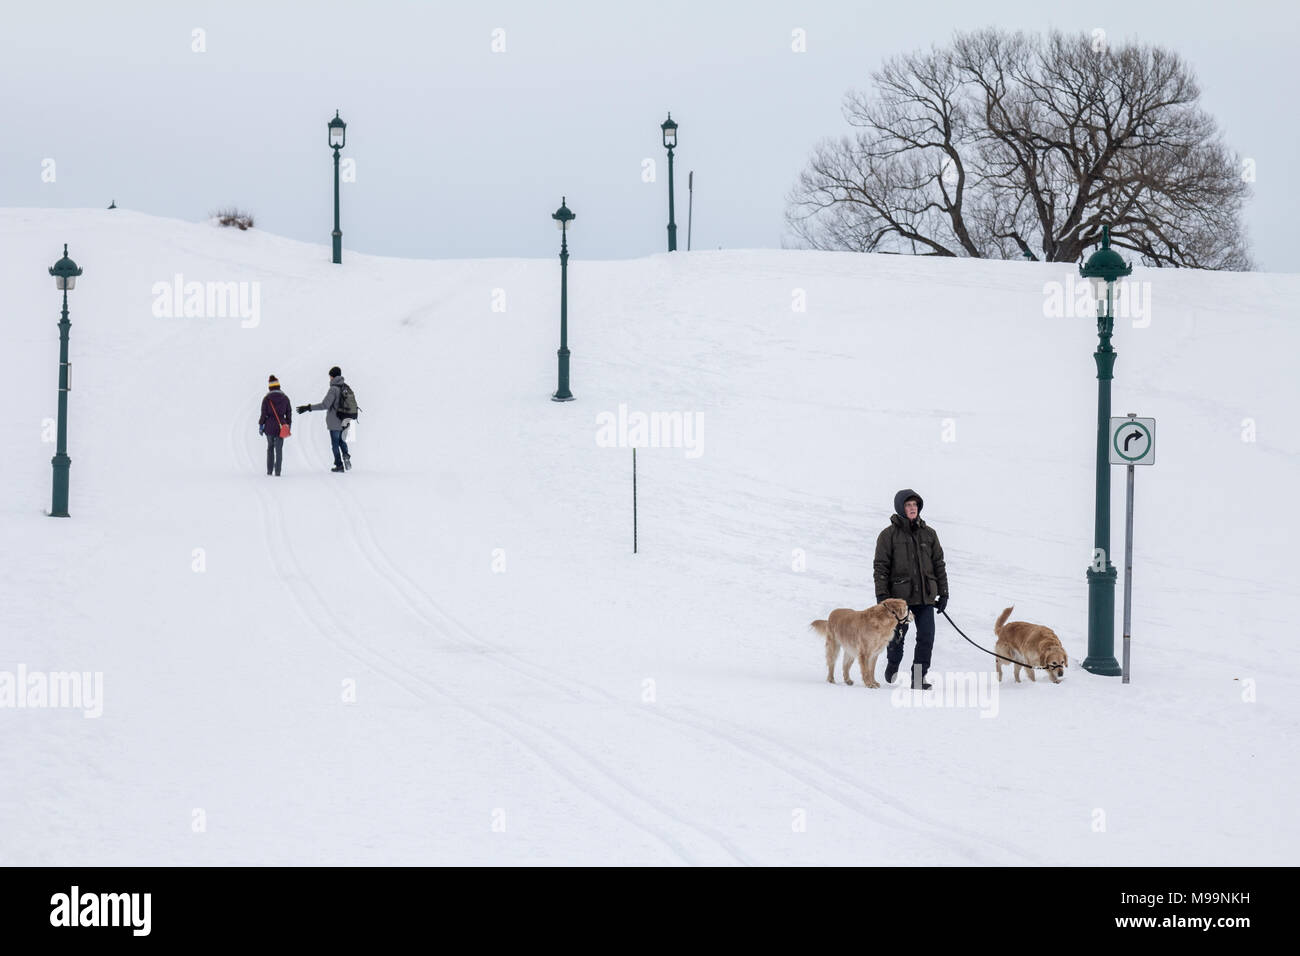 QUEBEC, CANADA - DECEMBER 26, 2016: Man walking a dog in the plains of Abraham (Plaines d'Abraham) under heavy snow during the Canadian winter.   Pict - Stock Image